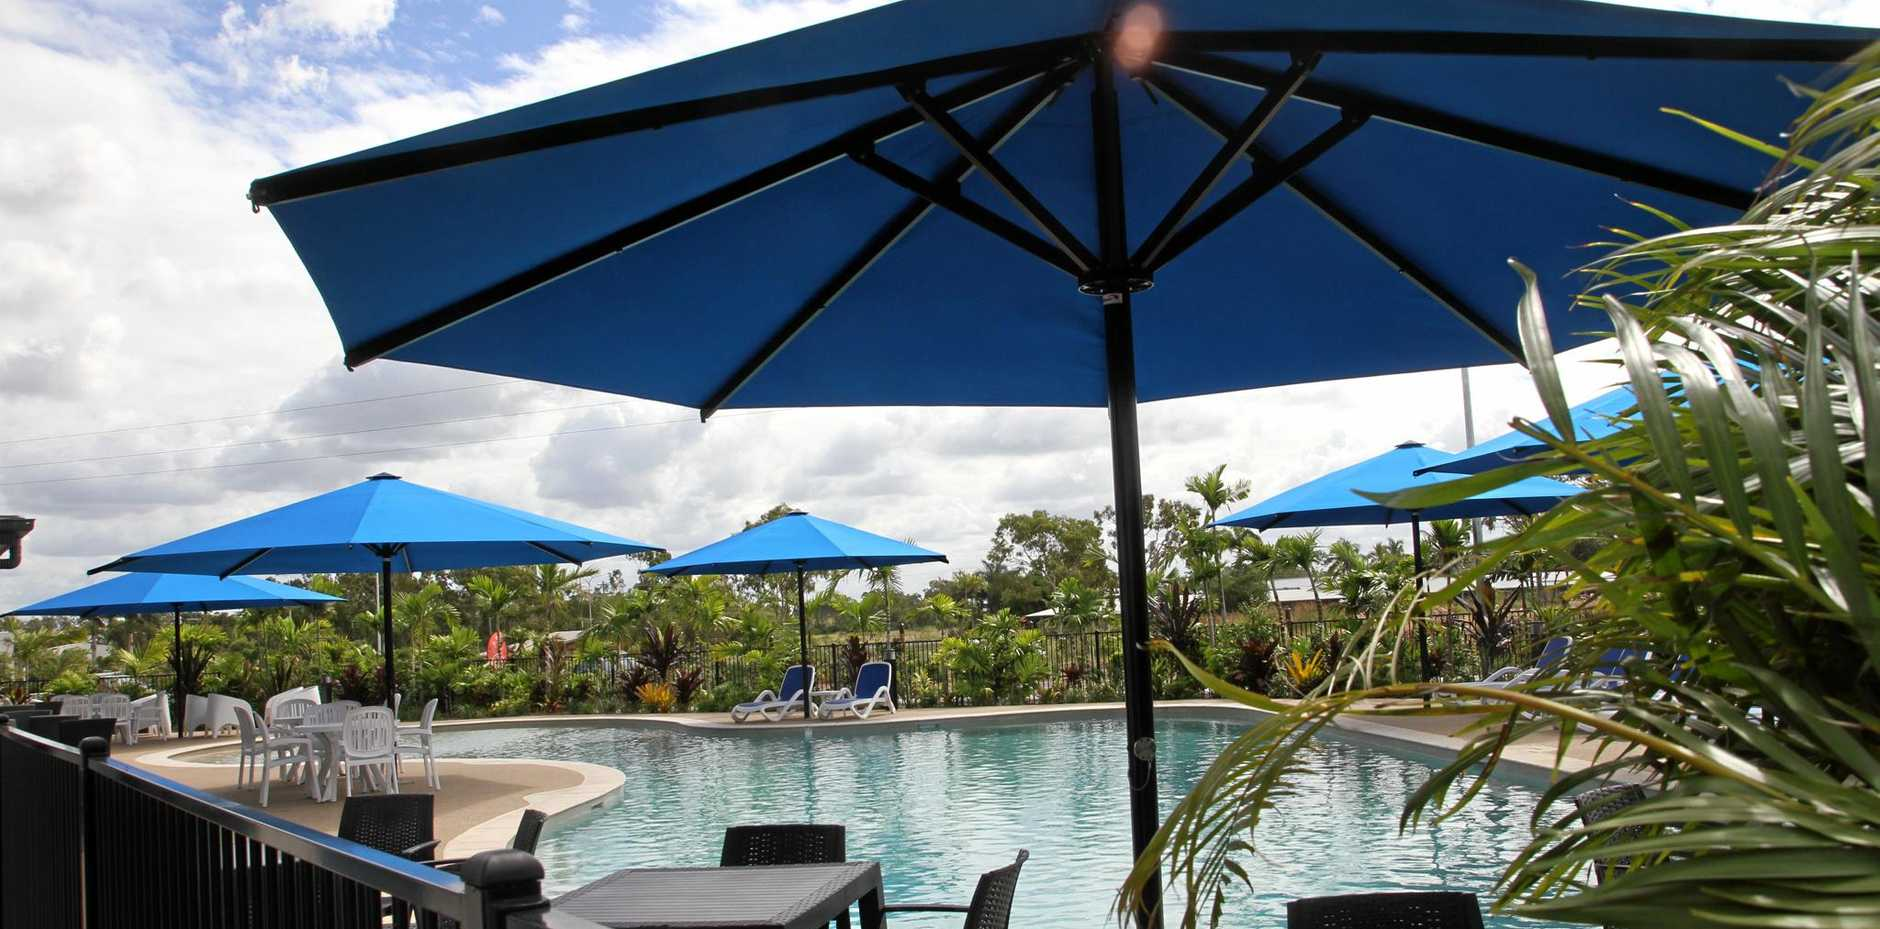 Korte's Resort at Parkhurst are expanding just a year after opening, with Rockhampton Regional Council approving plans for a new function centre.